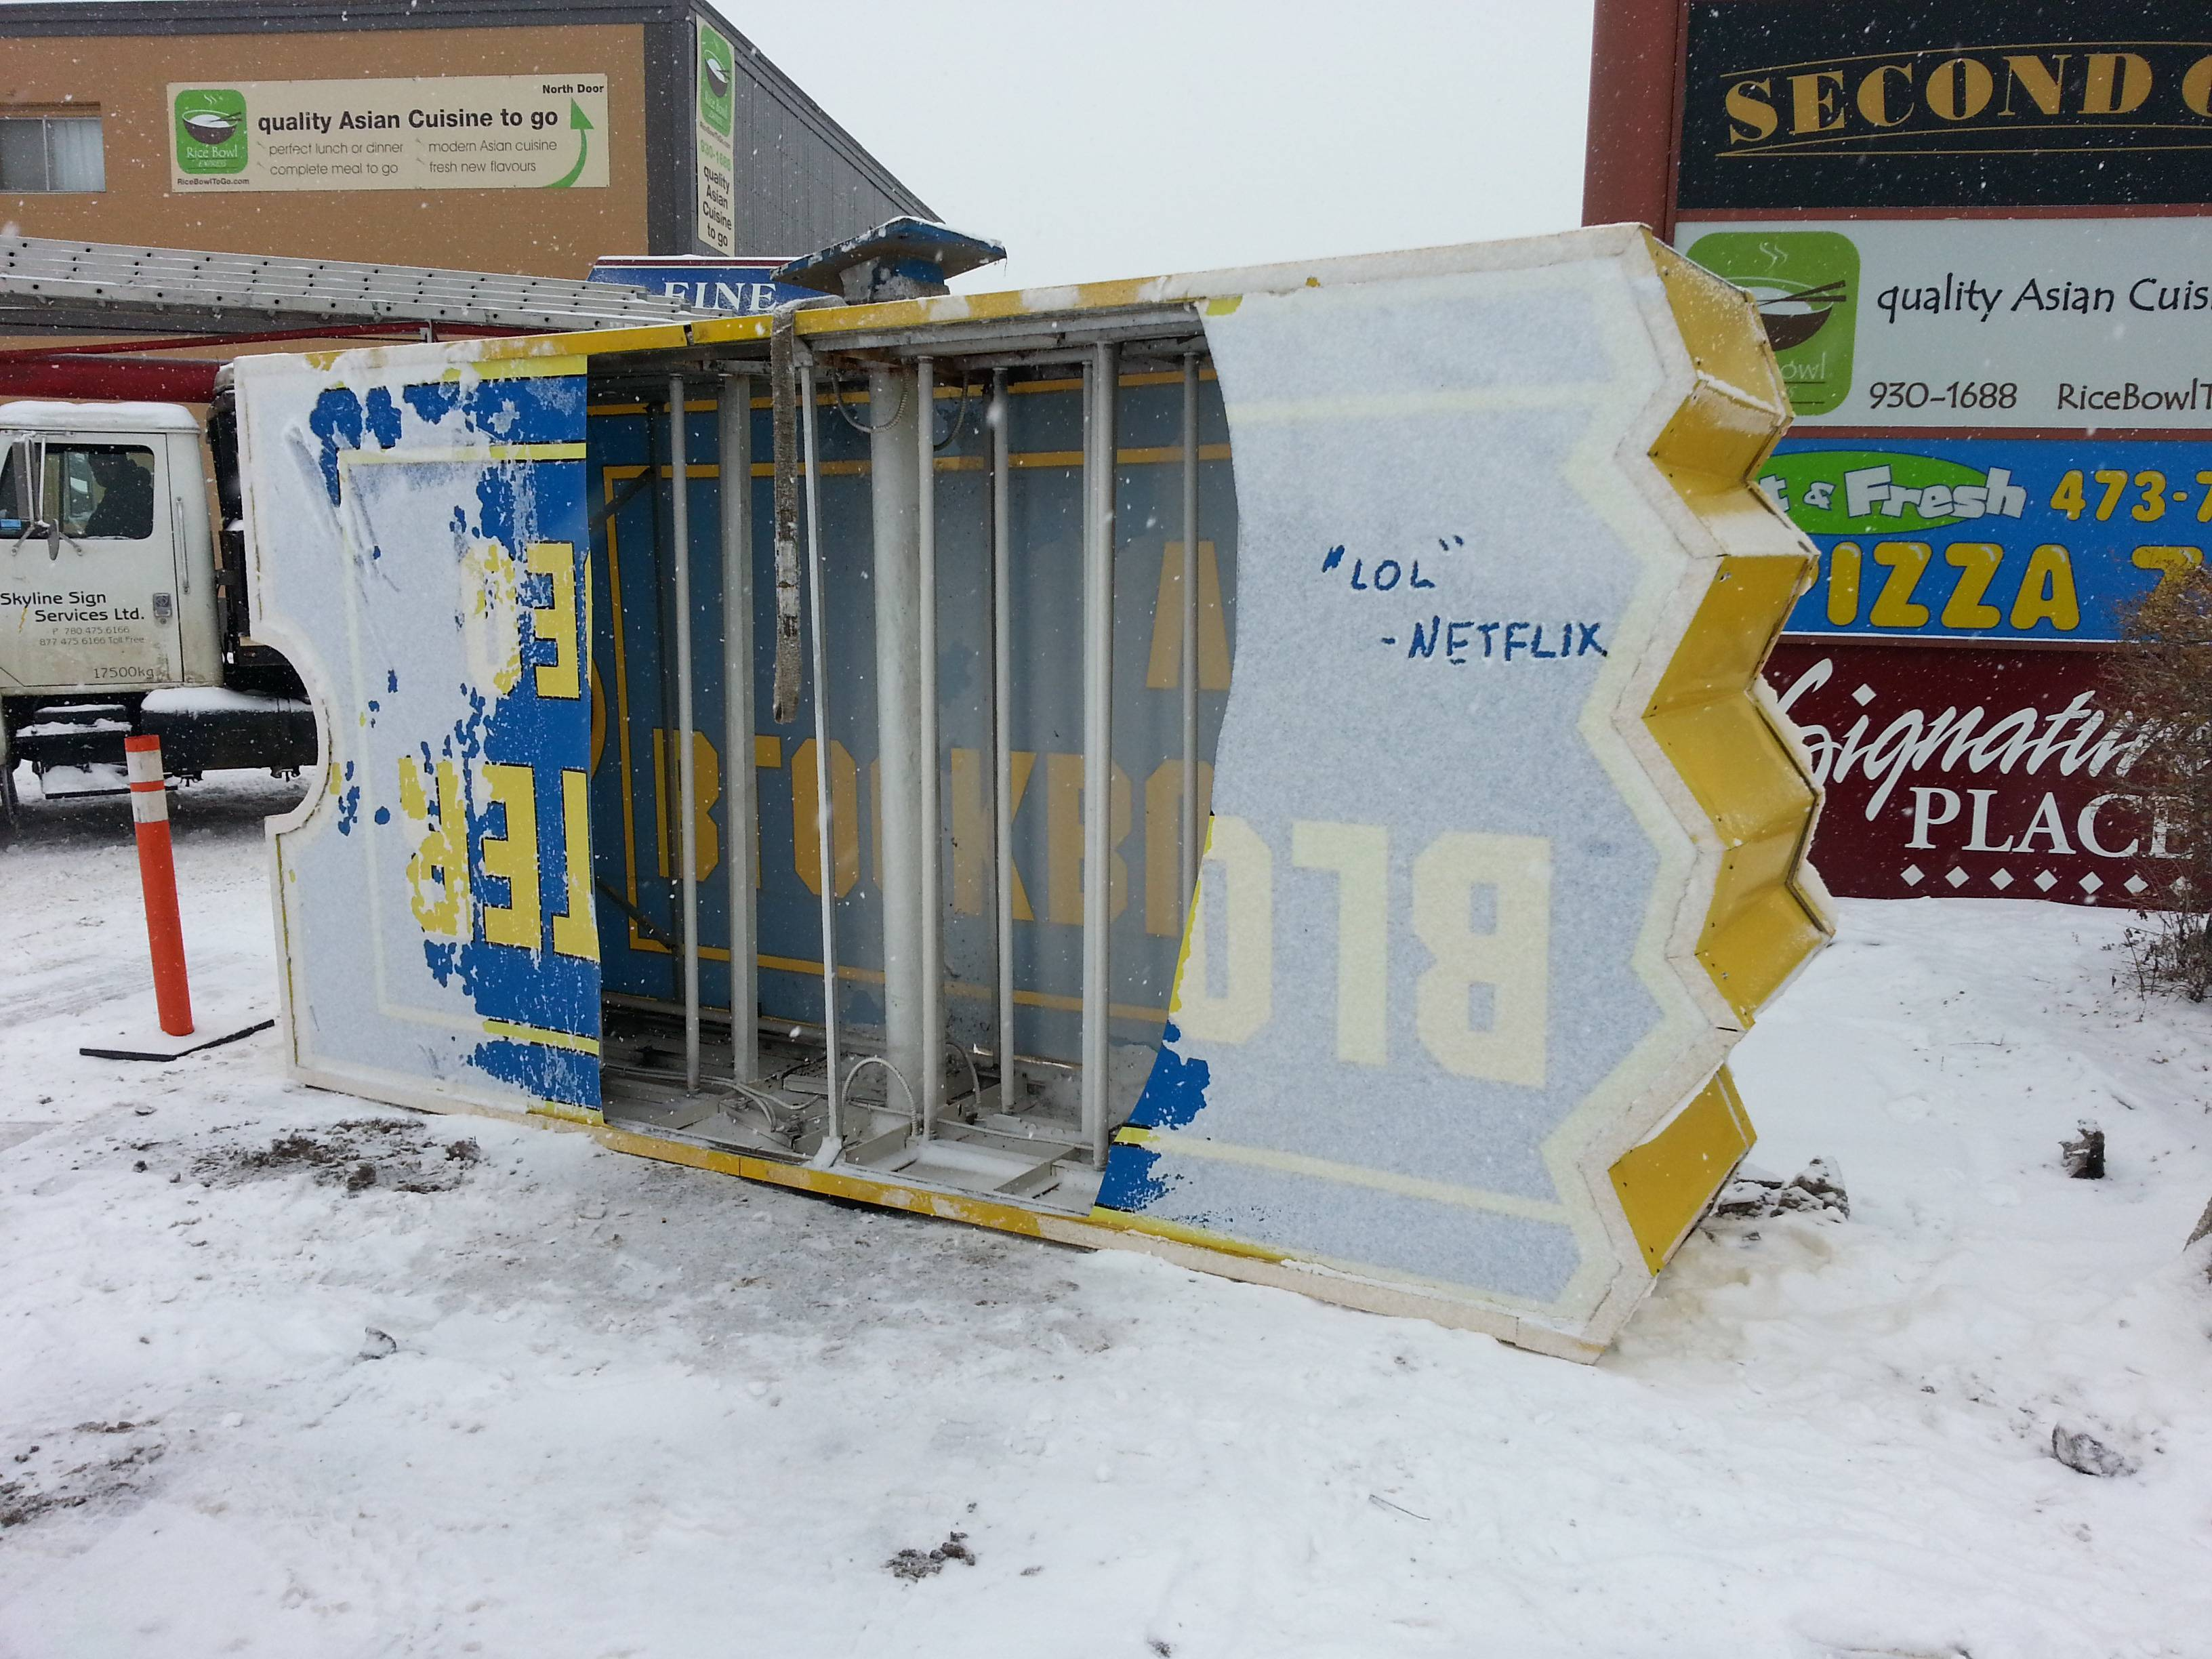 Message on fallen Blockbuster sign adds insult to injury.